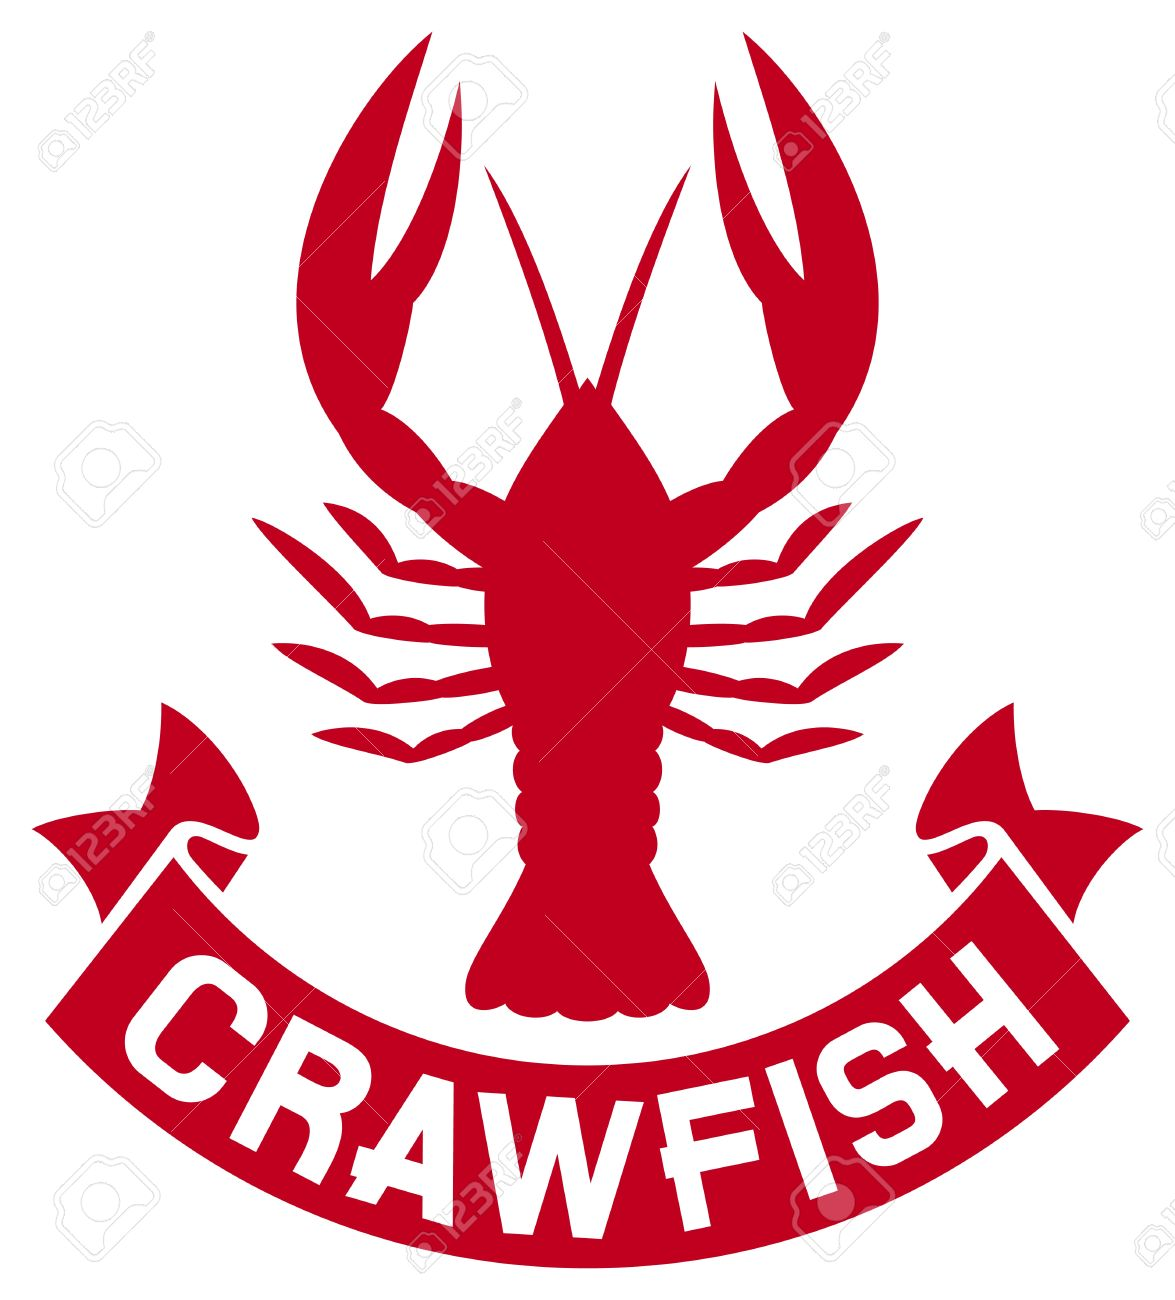 1,247 Crawfish Stock Illustrations, Cliparts And Royalty Free.